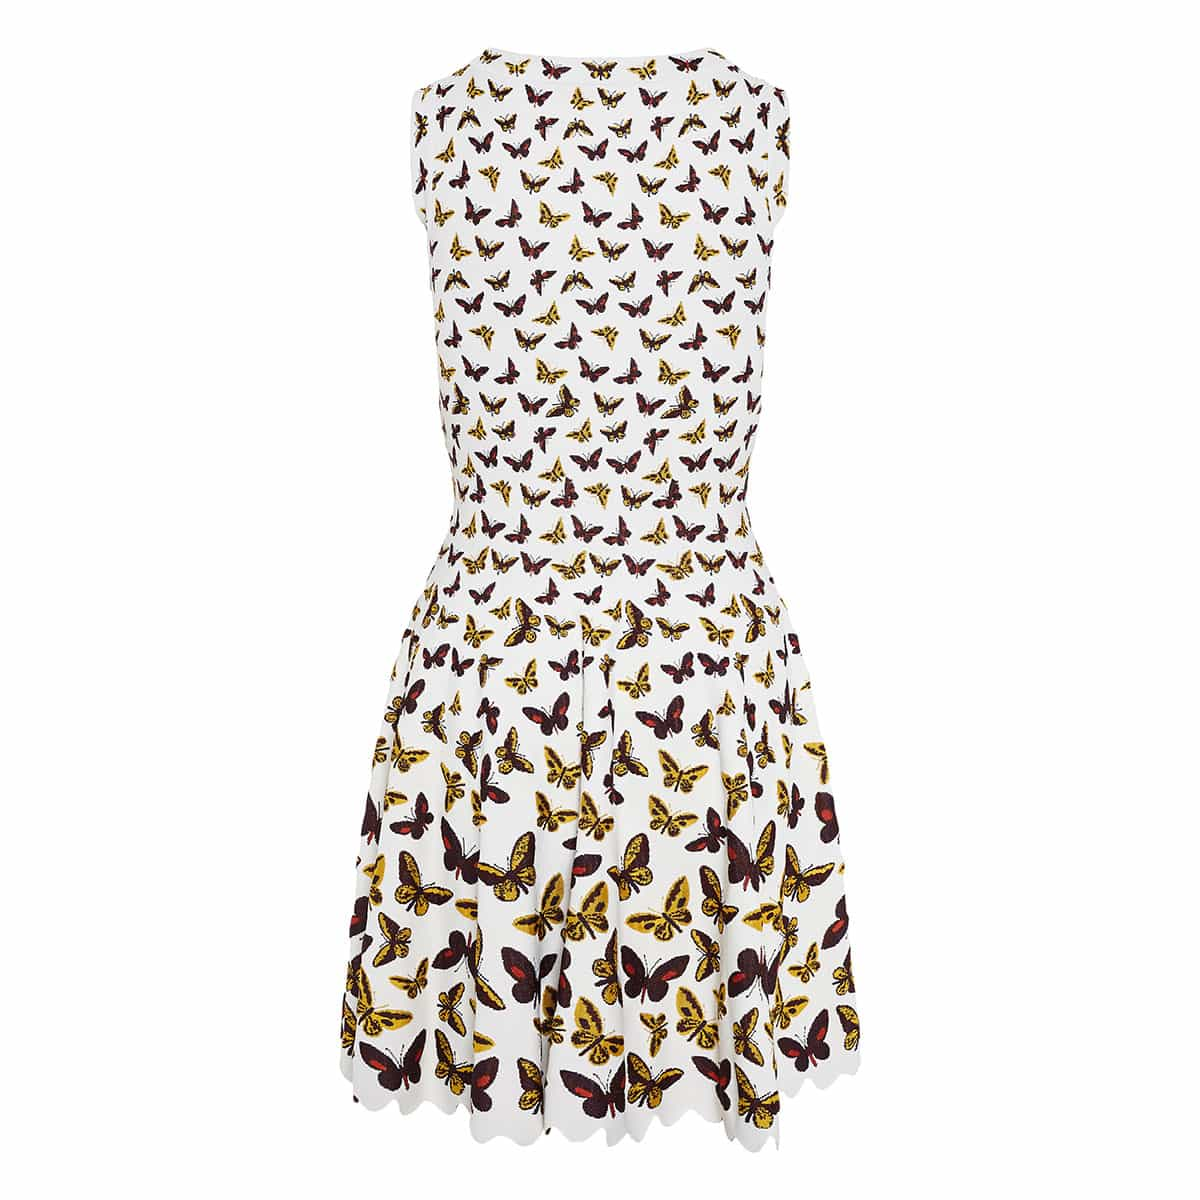 Butterfly fit-and-flare knitted dress